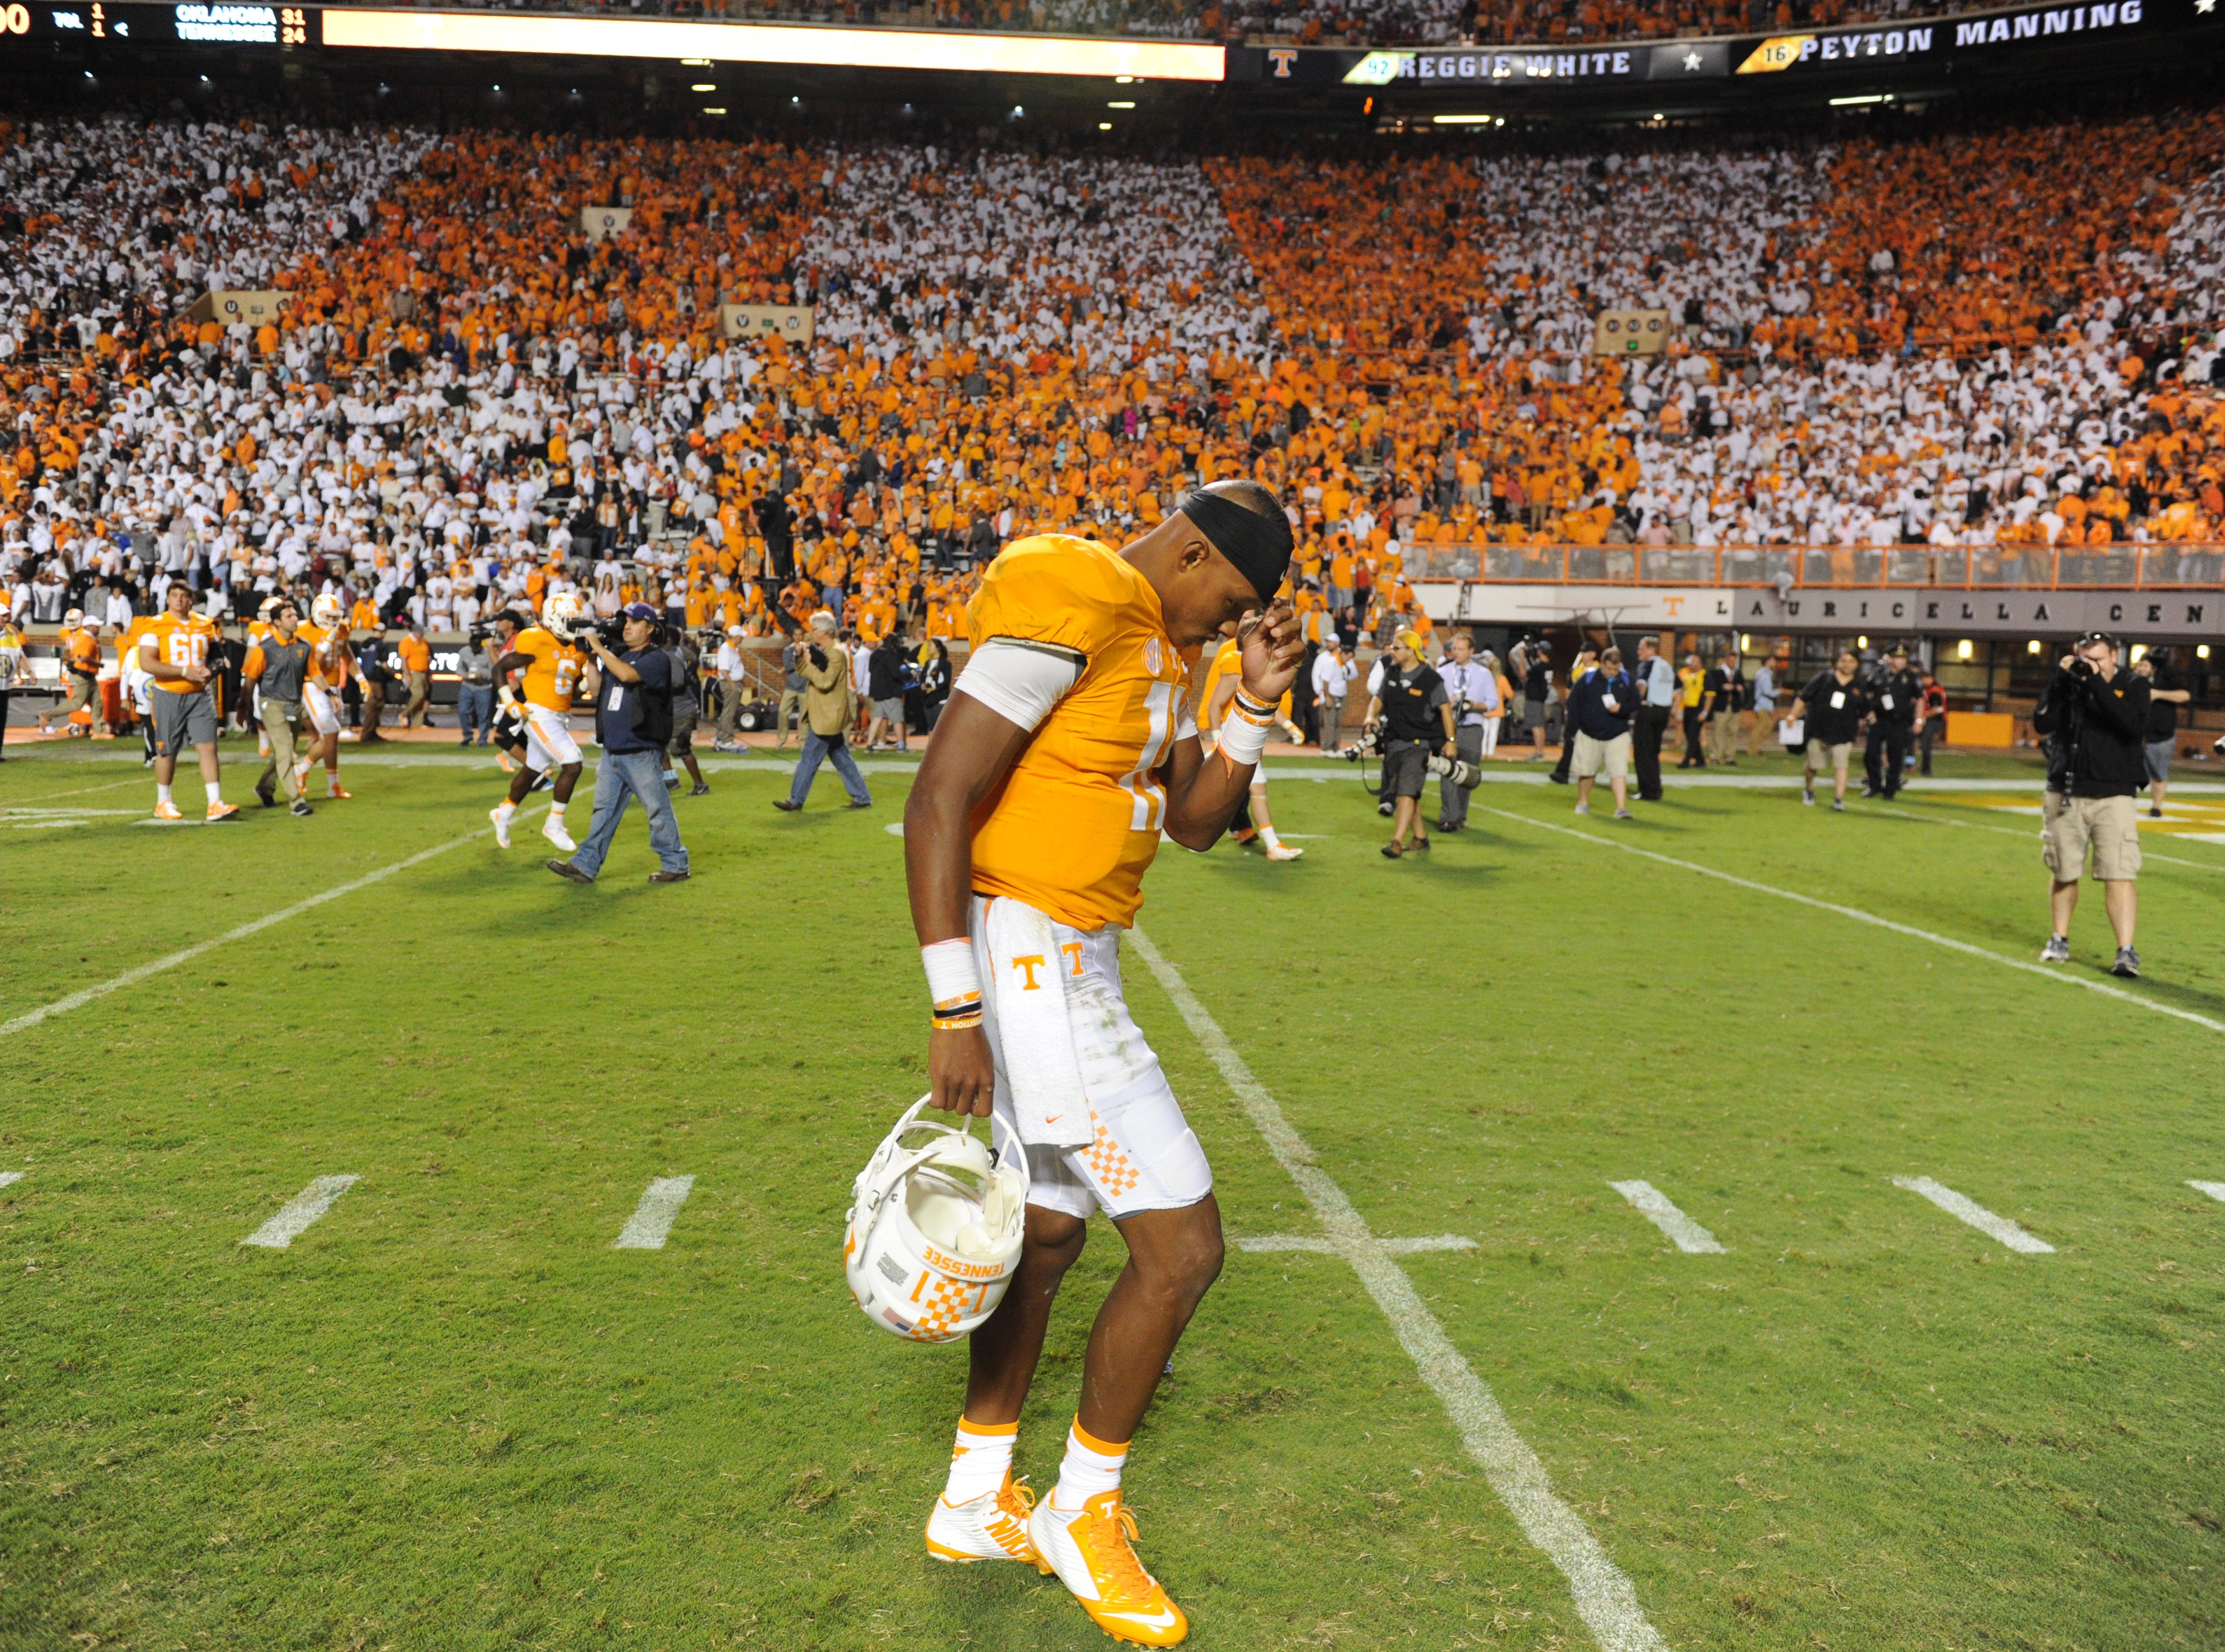 Tennessee quarterback Joshua Dobbs (11) walks off the field following their 31-24 loss to Oklahoma in Neyland Stadium Saturday, Sep. 12, 2015.